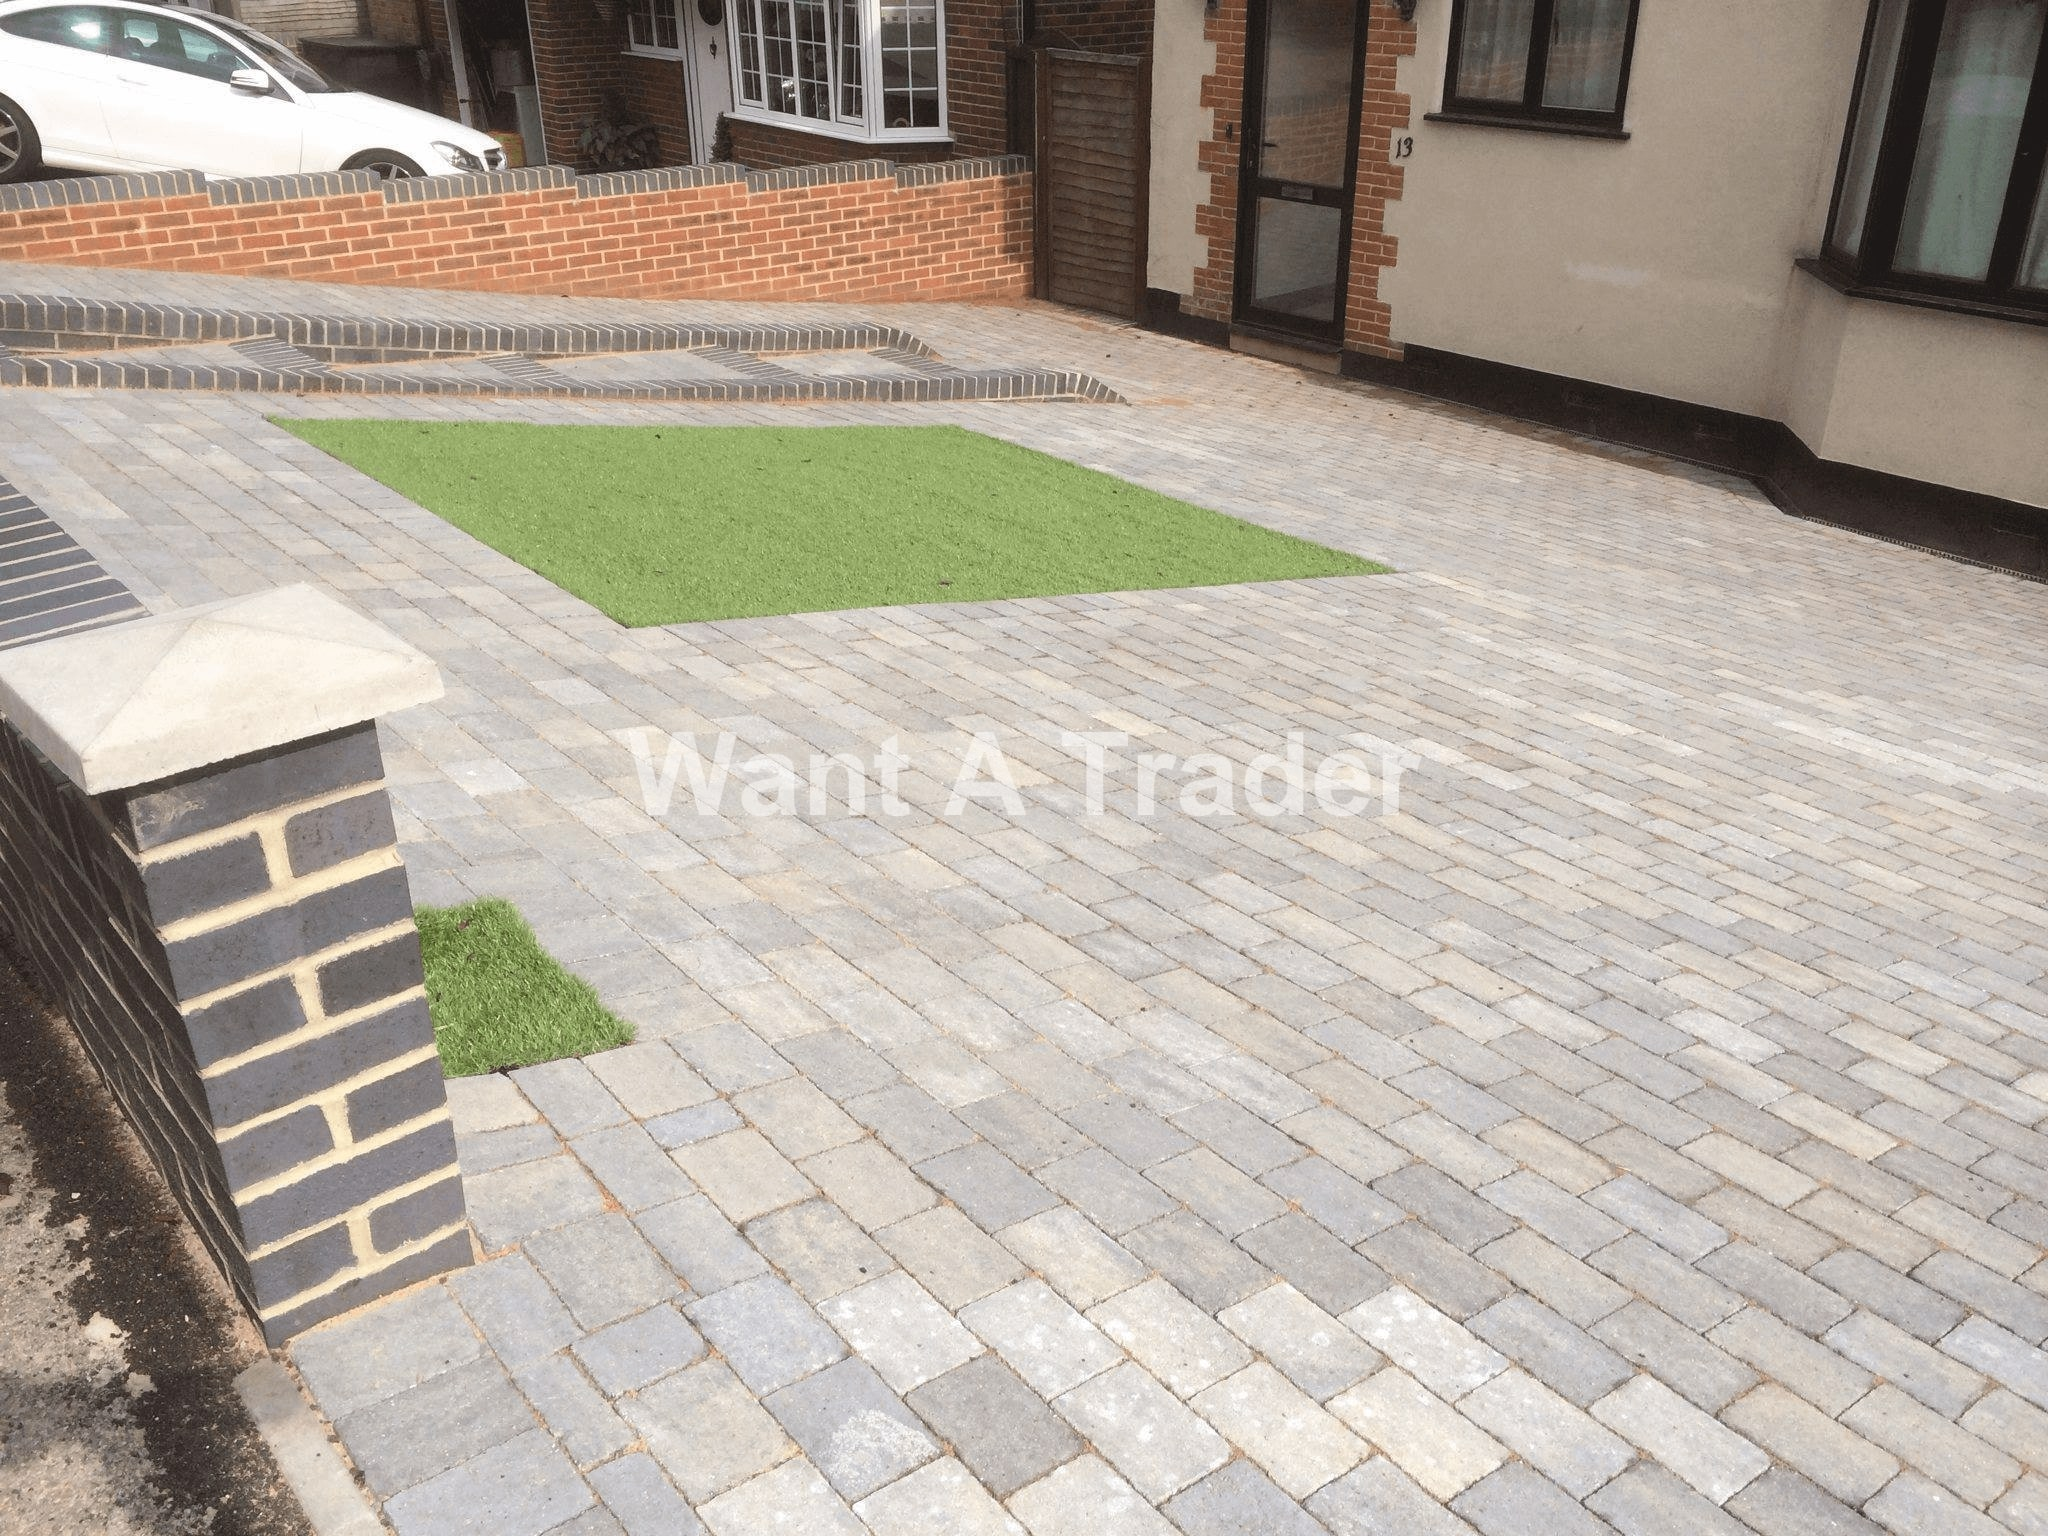 Driveway Design and Installation Company Hayes UB3